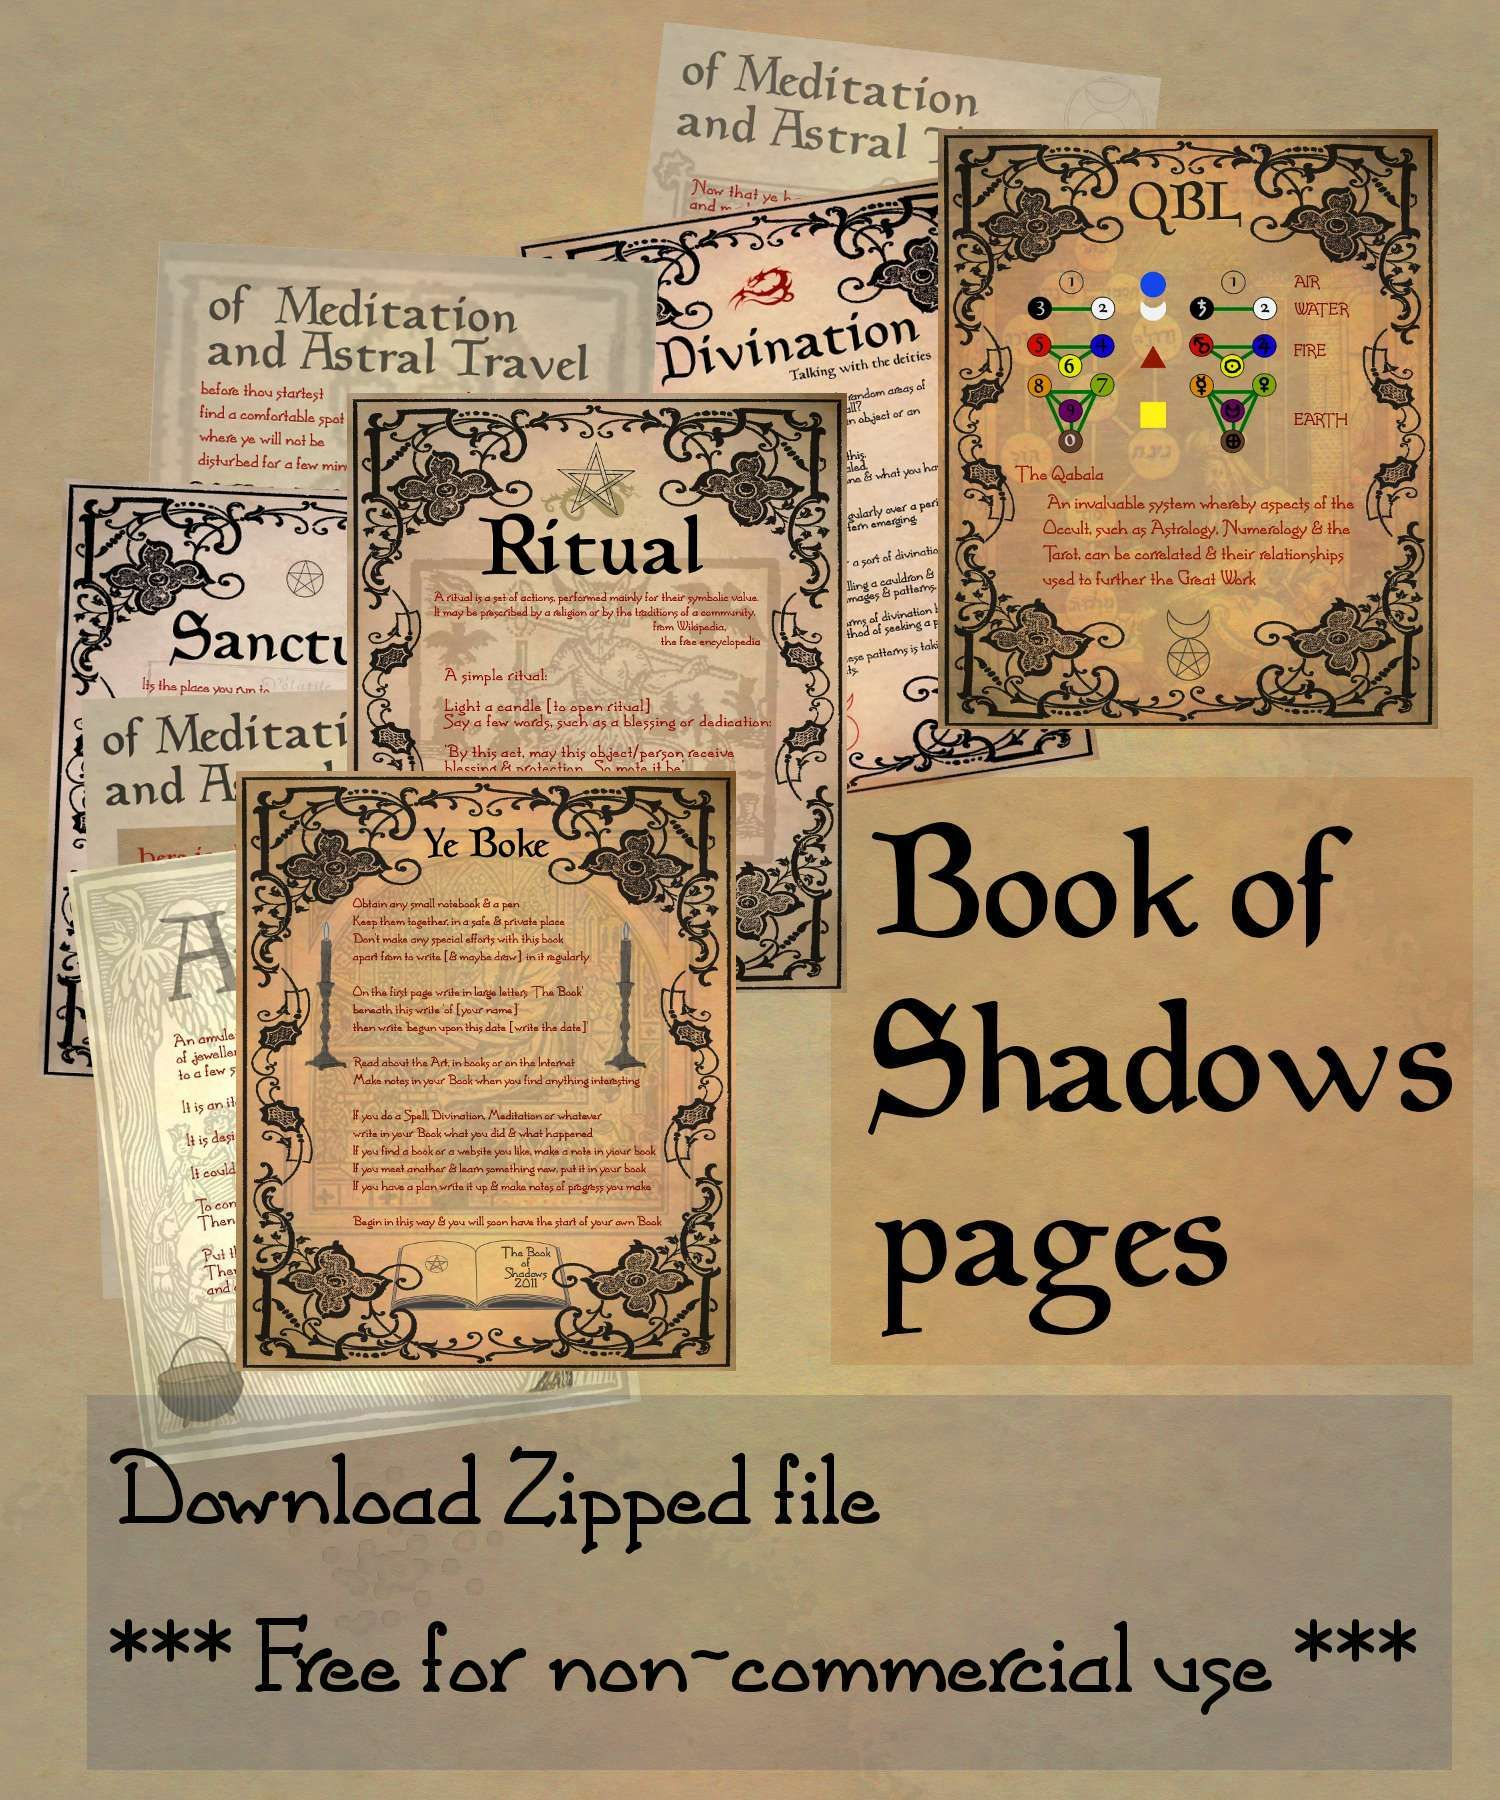 photograph about Free Printable Book of Shadows Pages identified as Guide of Shadows 05 compendium by way of upon